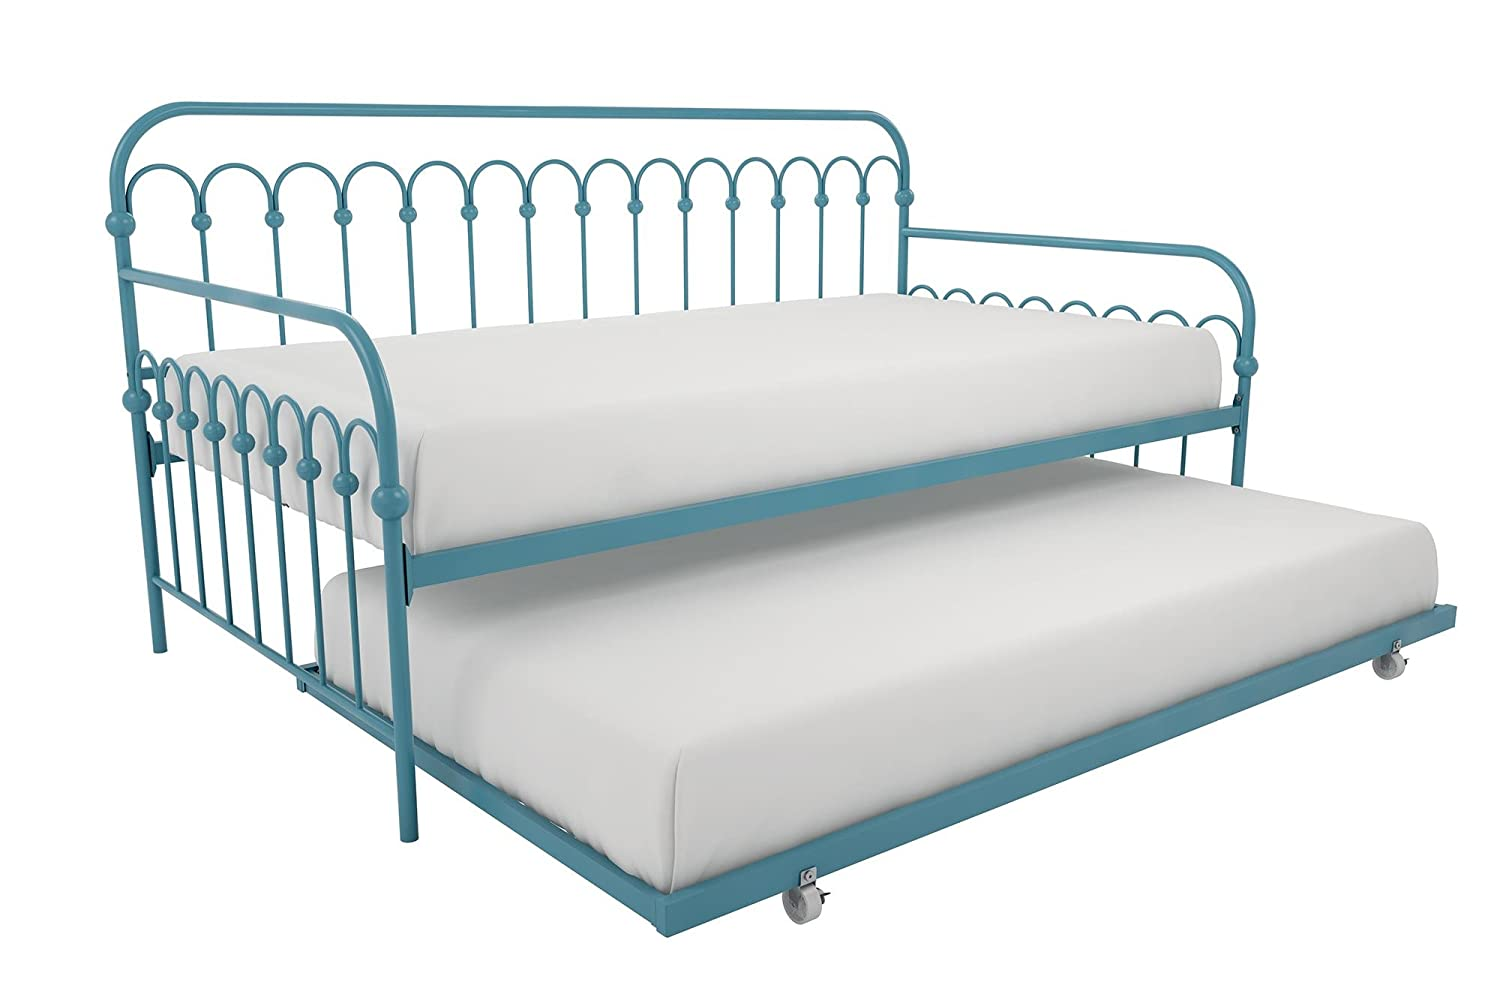 Novogratz Bright Pop Metal Bed, Adjustable Height for Under Bed Storage, Slats Included, Twin Size Frame